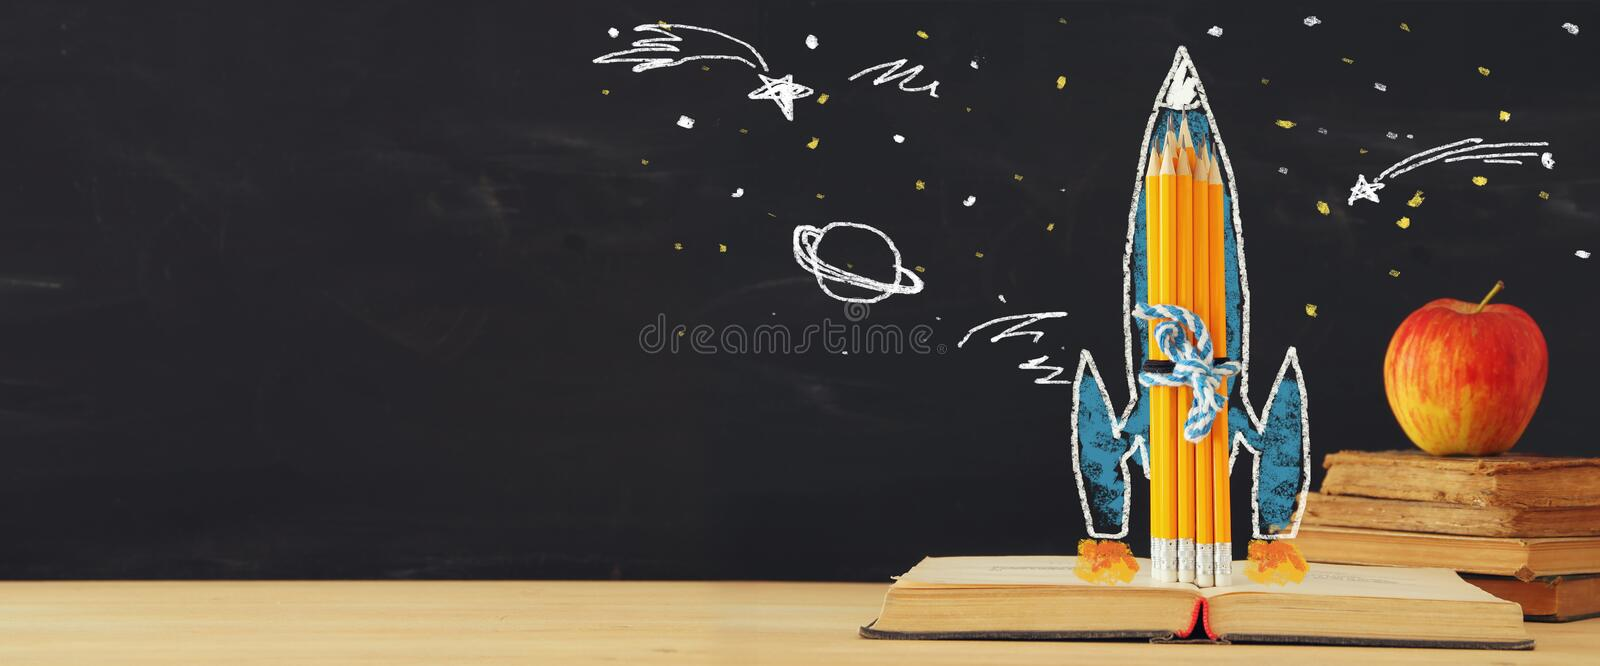 Back to school banner. rocket sketch and pencils over open book in front of classroom blackboard. royalty free stock photography